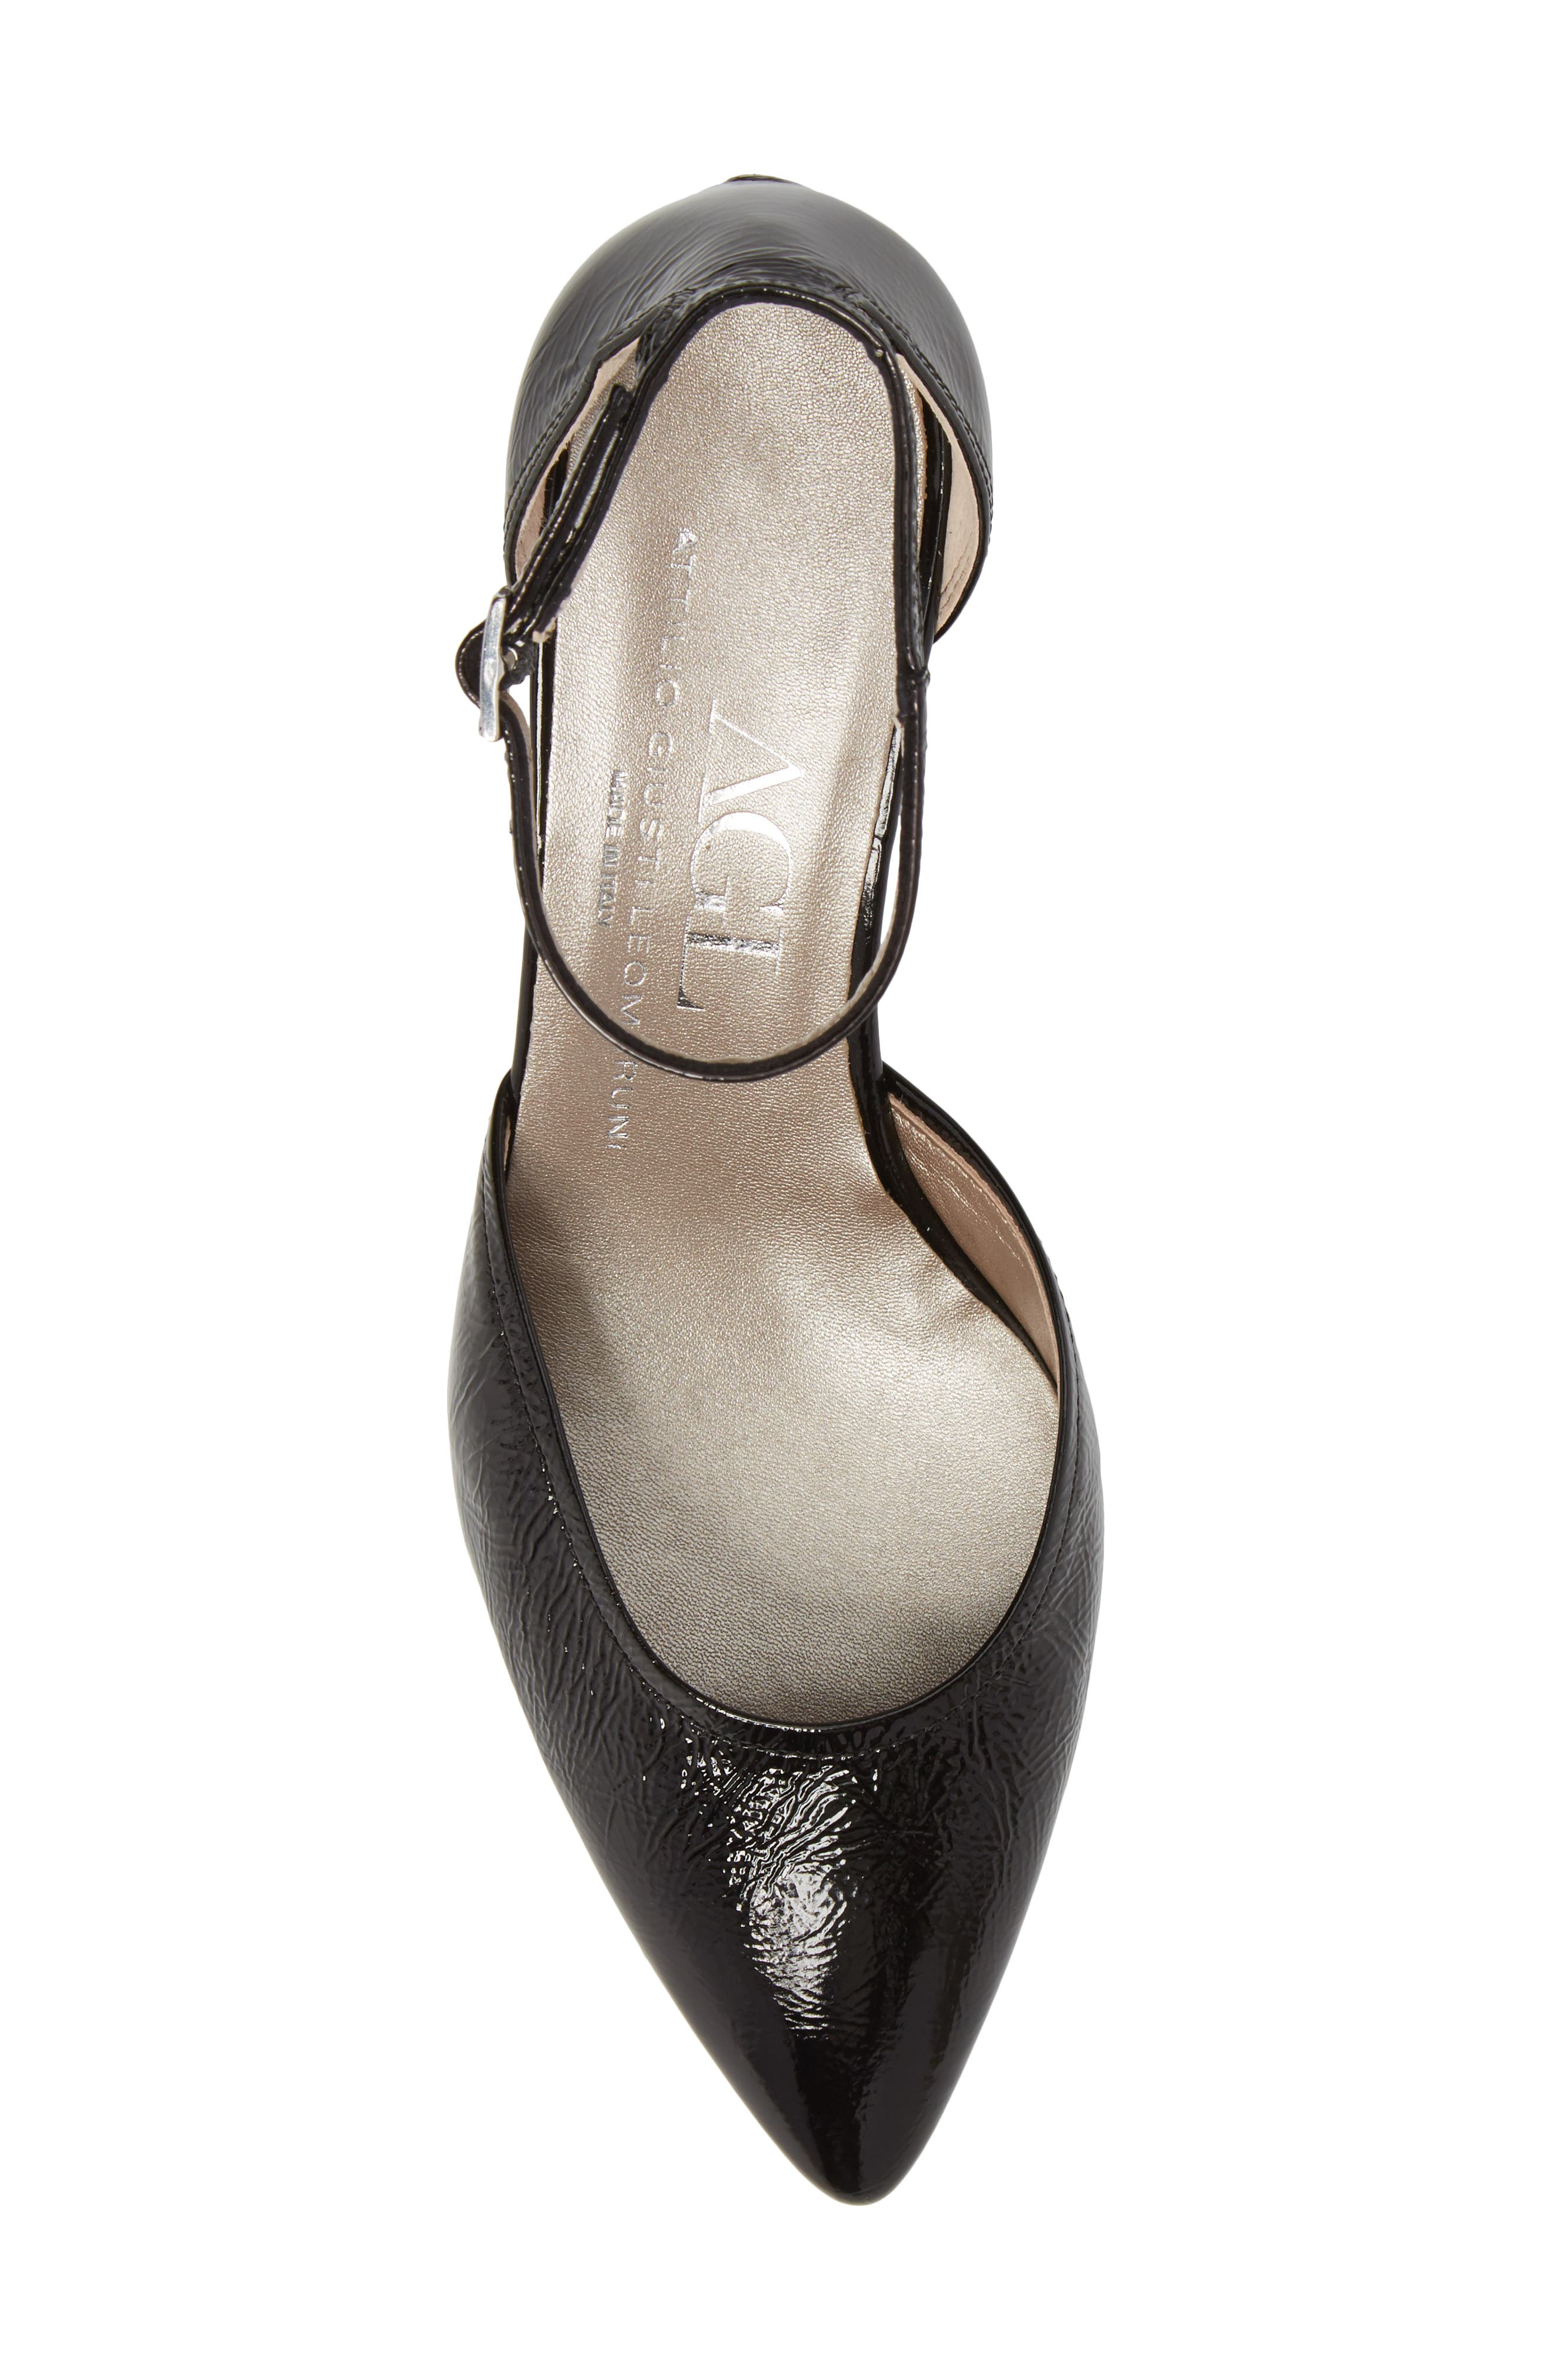 d'Orsay Ankle Strap Pump,                             Alternate thumbnail 5, color,                             BLACK GLAMMY LEATHER